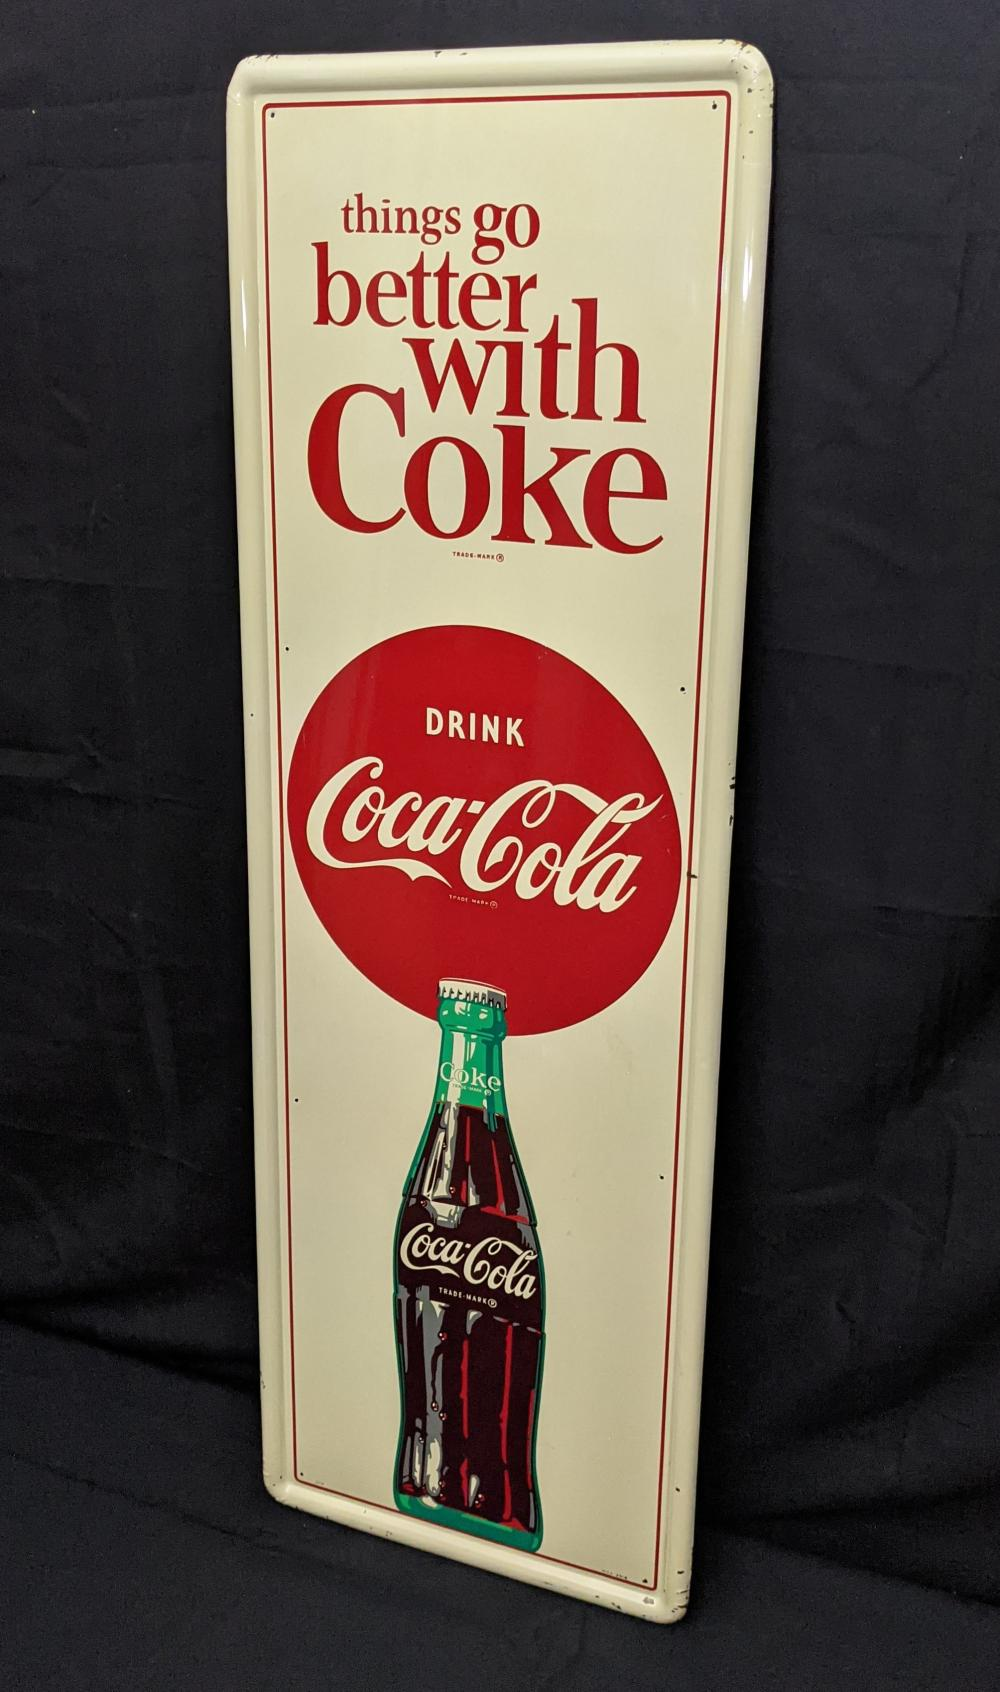 TIN SIGN DRINK COCA COLA THINGS GO BETTER COKE